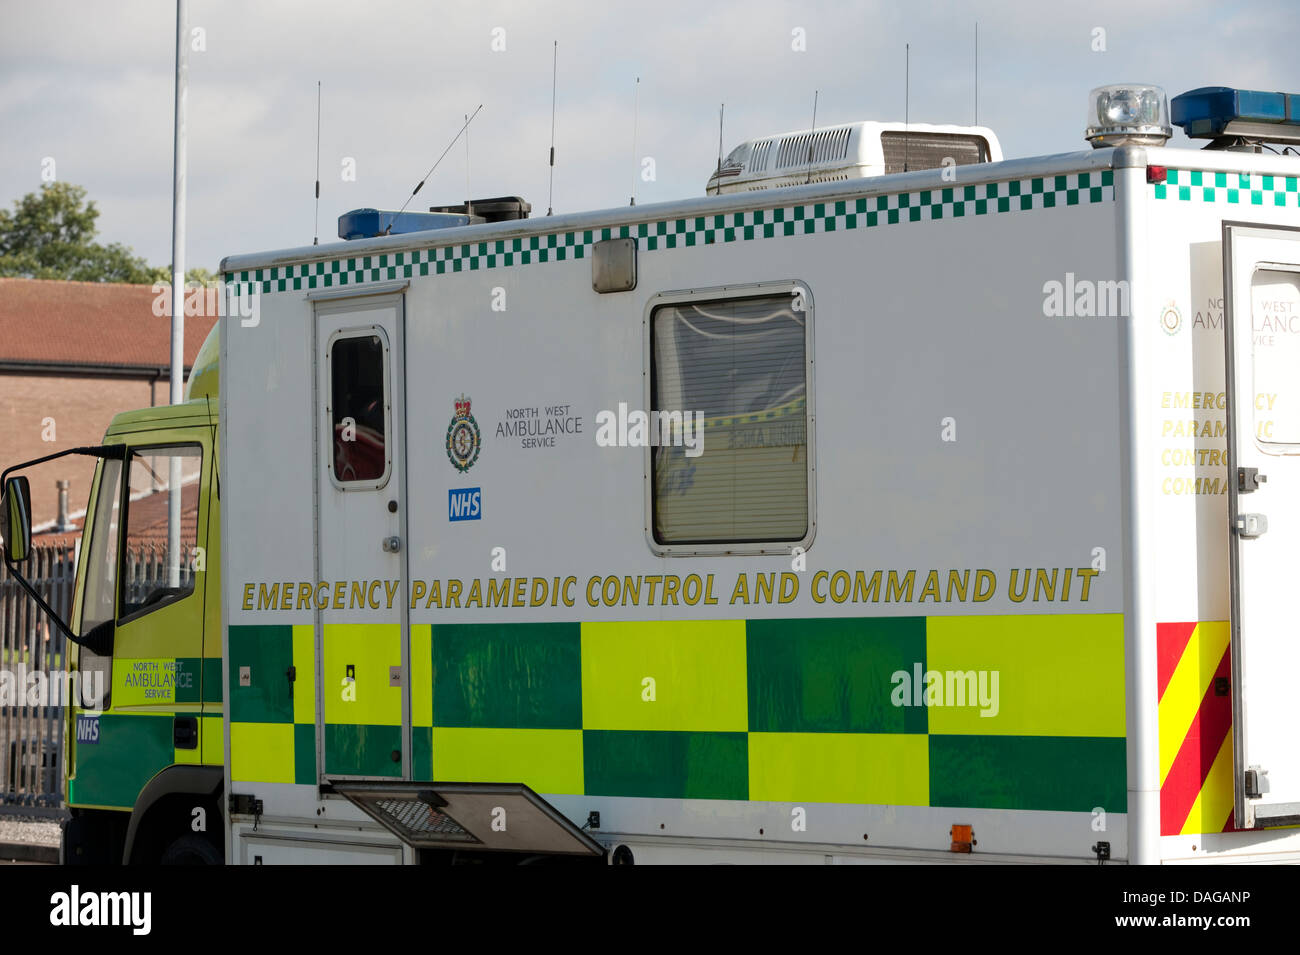 Emergency Paramedic Control And Command Unit - Stock Image